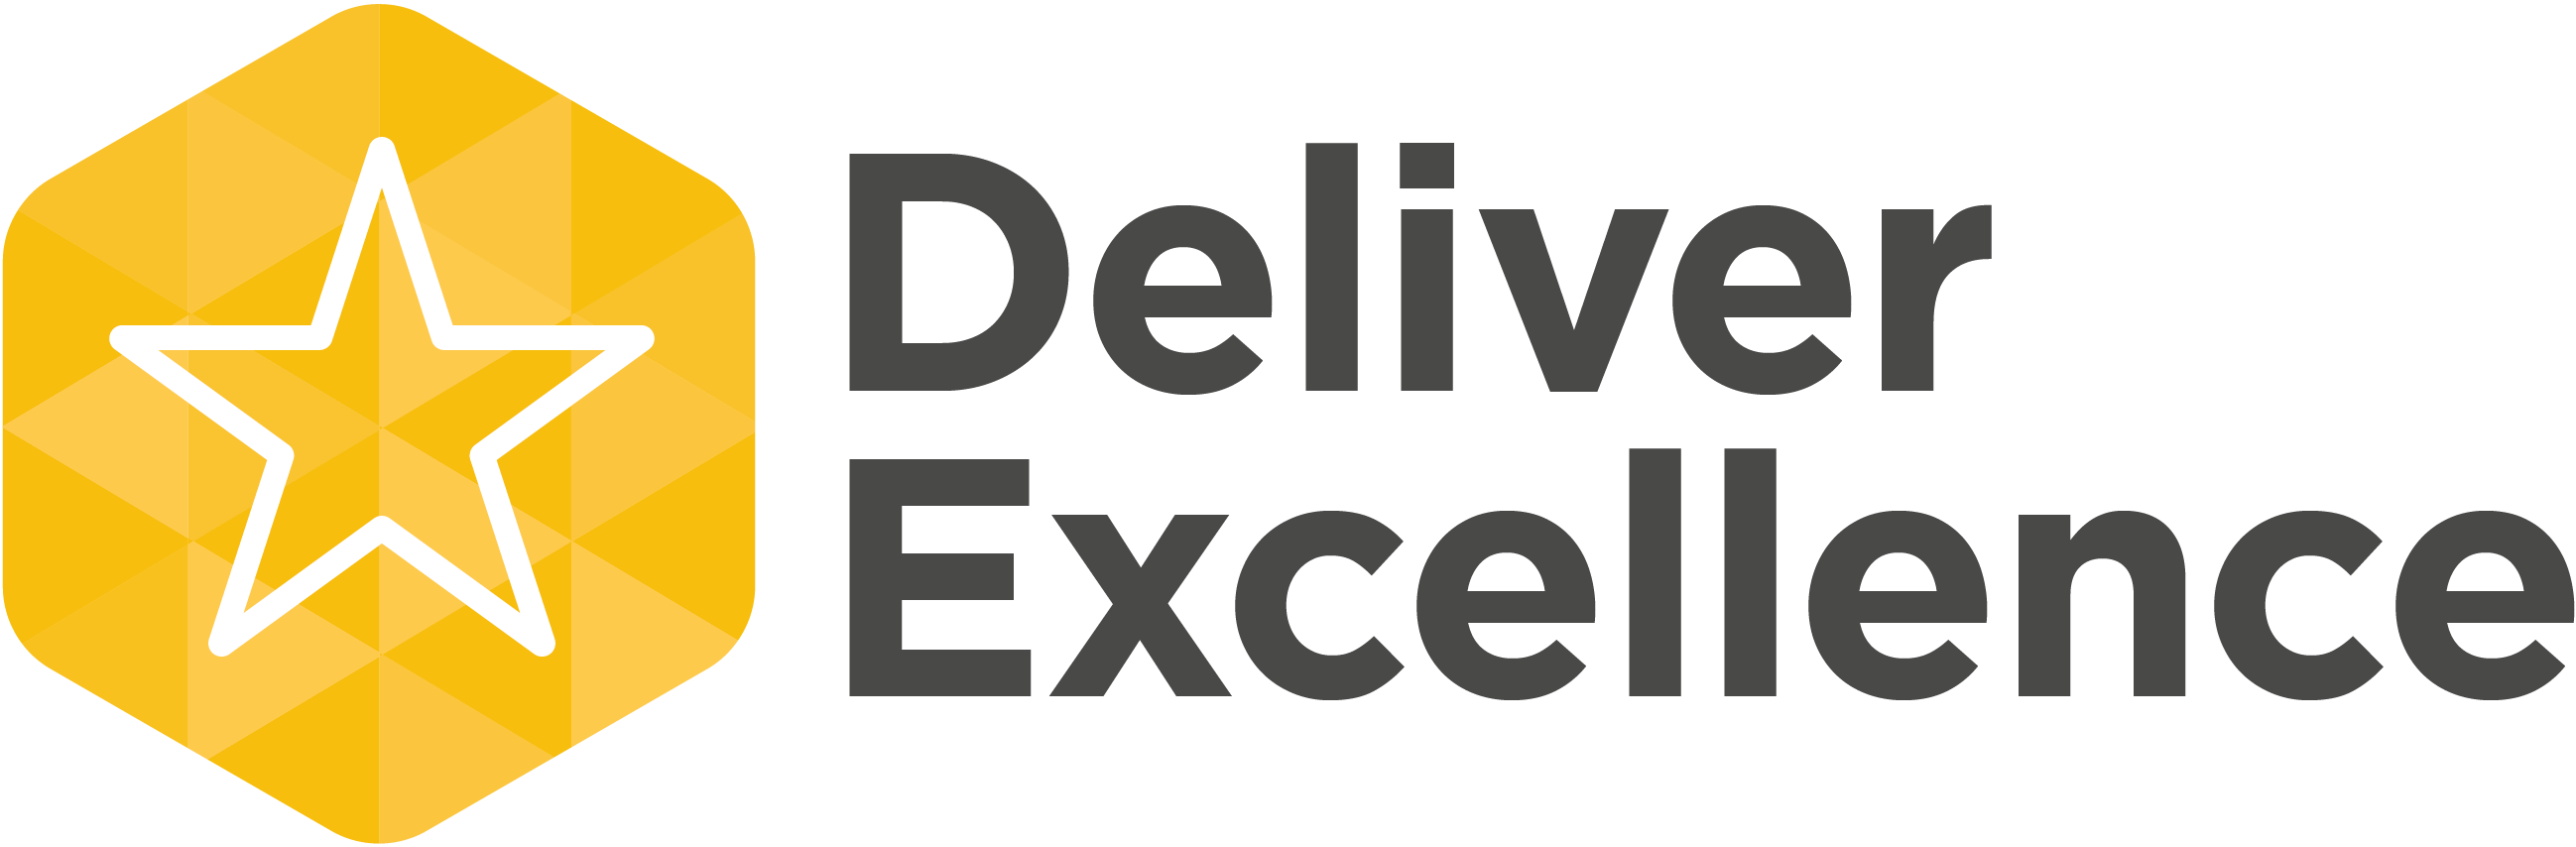 Deliver_Excellence-01.png